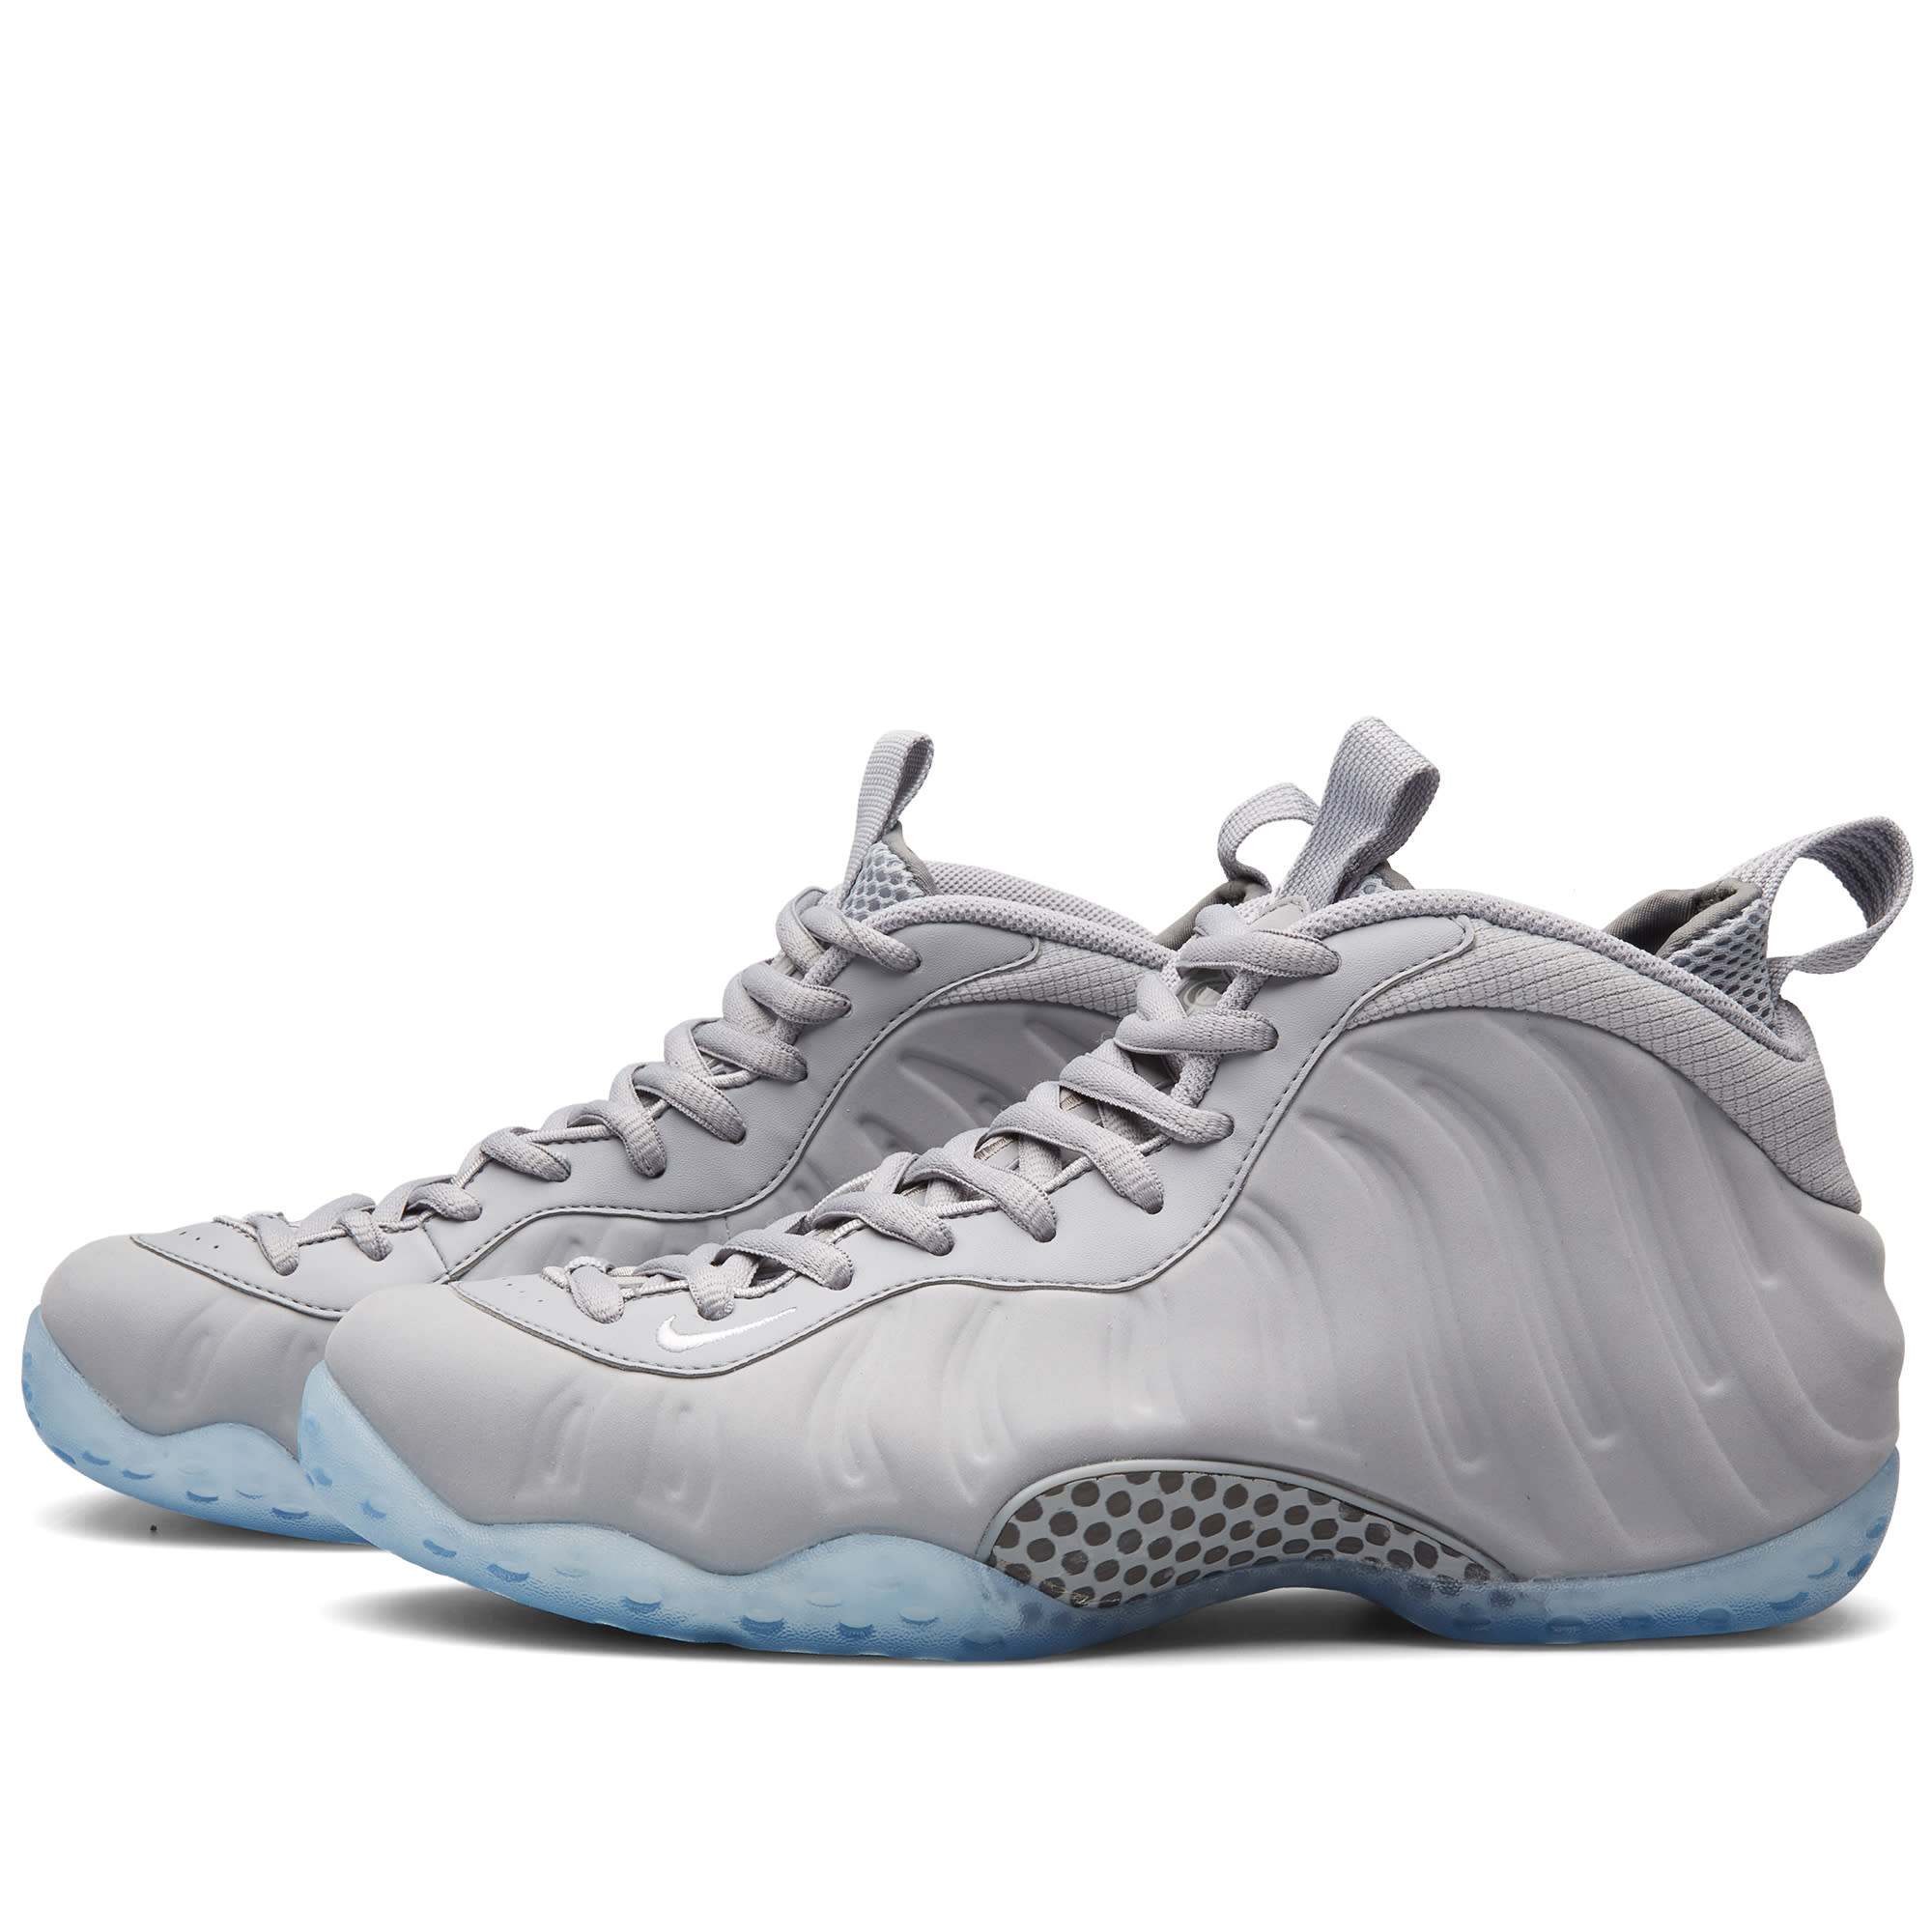 Nike Air Foamposite One University Blue On FootYouTube